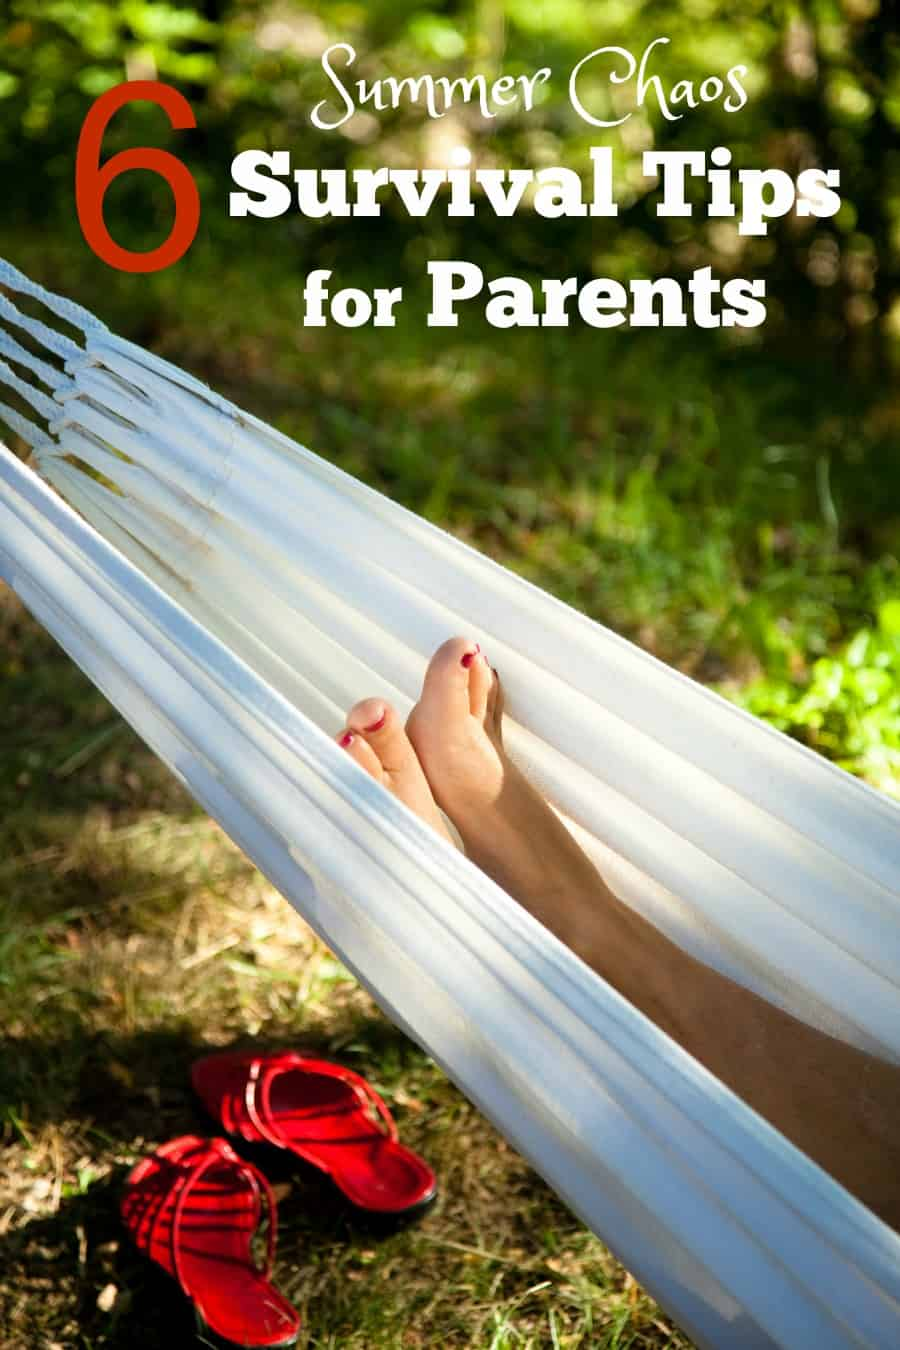 6 Summer Chaos Survival Tips for Parents